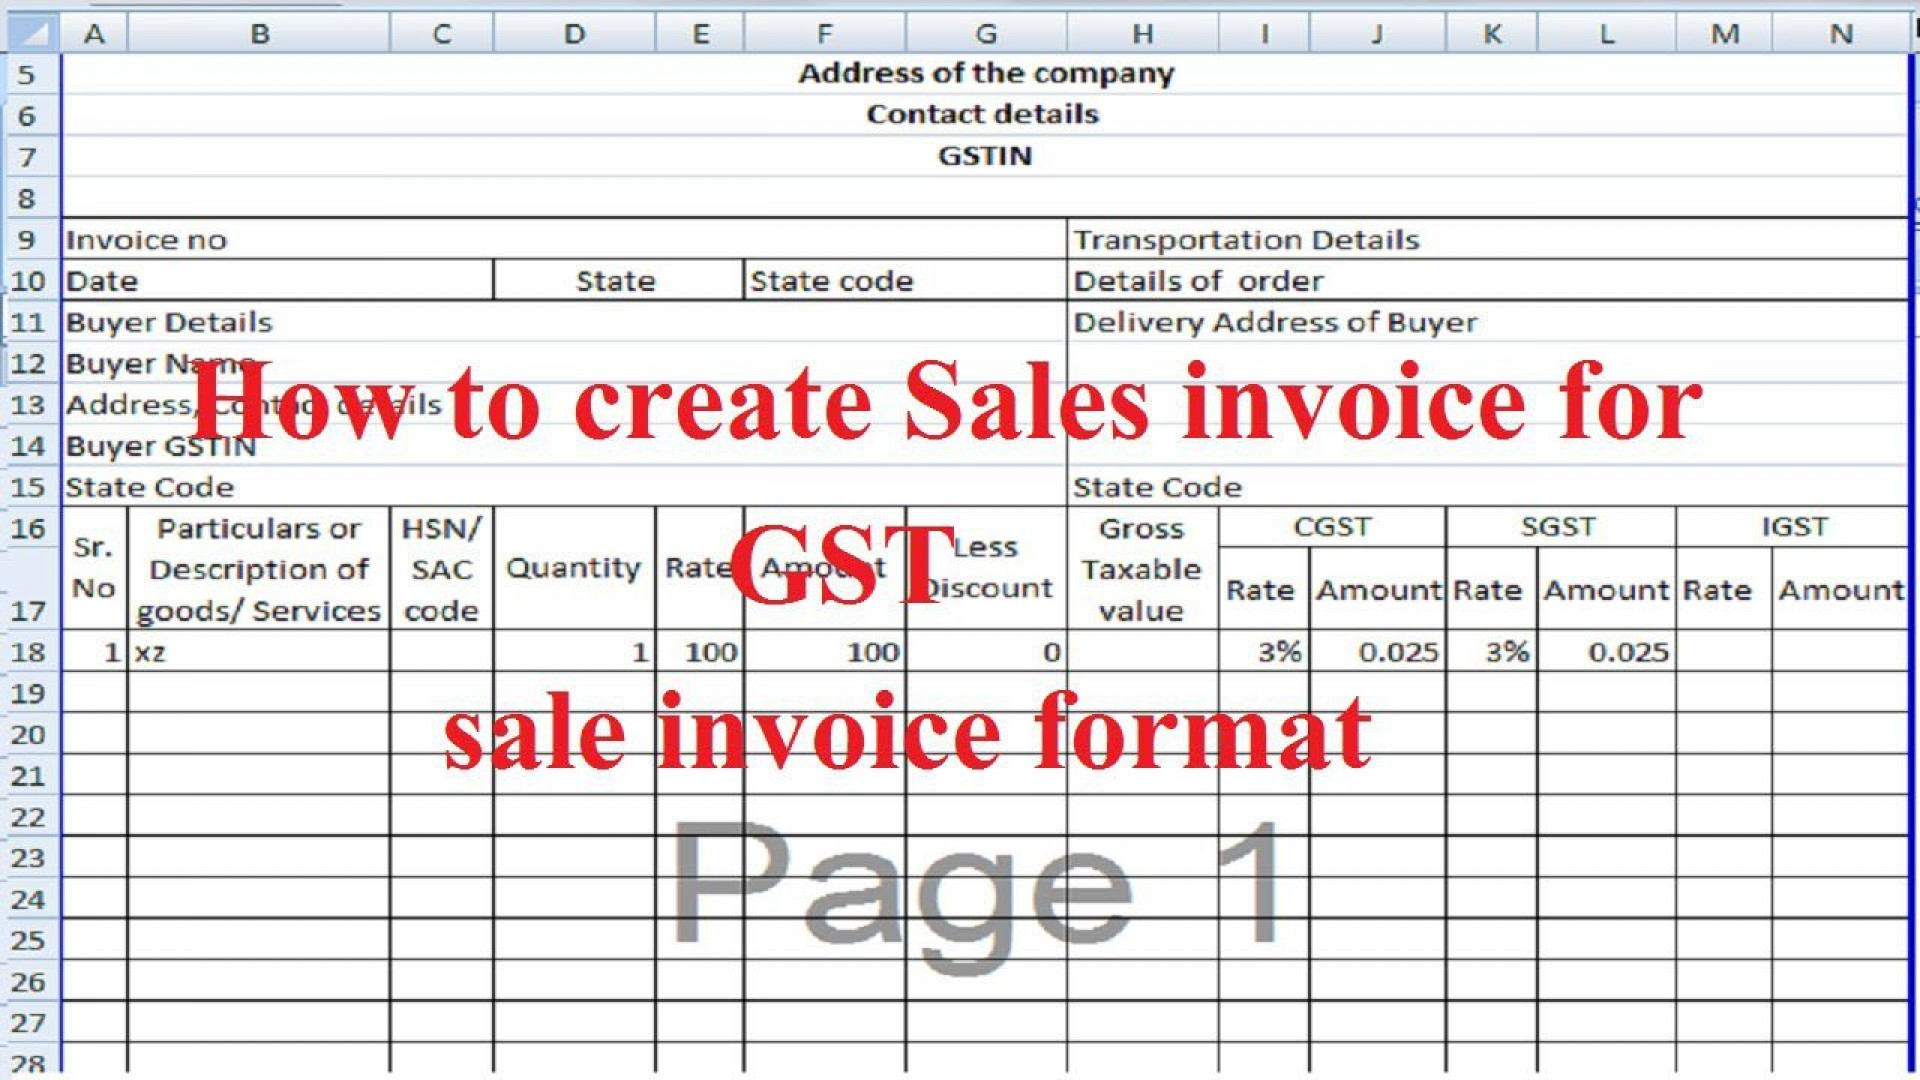 007 Sensational Excel Gst Invoice Format Download Image  In Pdf Tally Tax Free Sheet1920